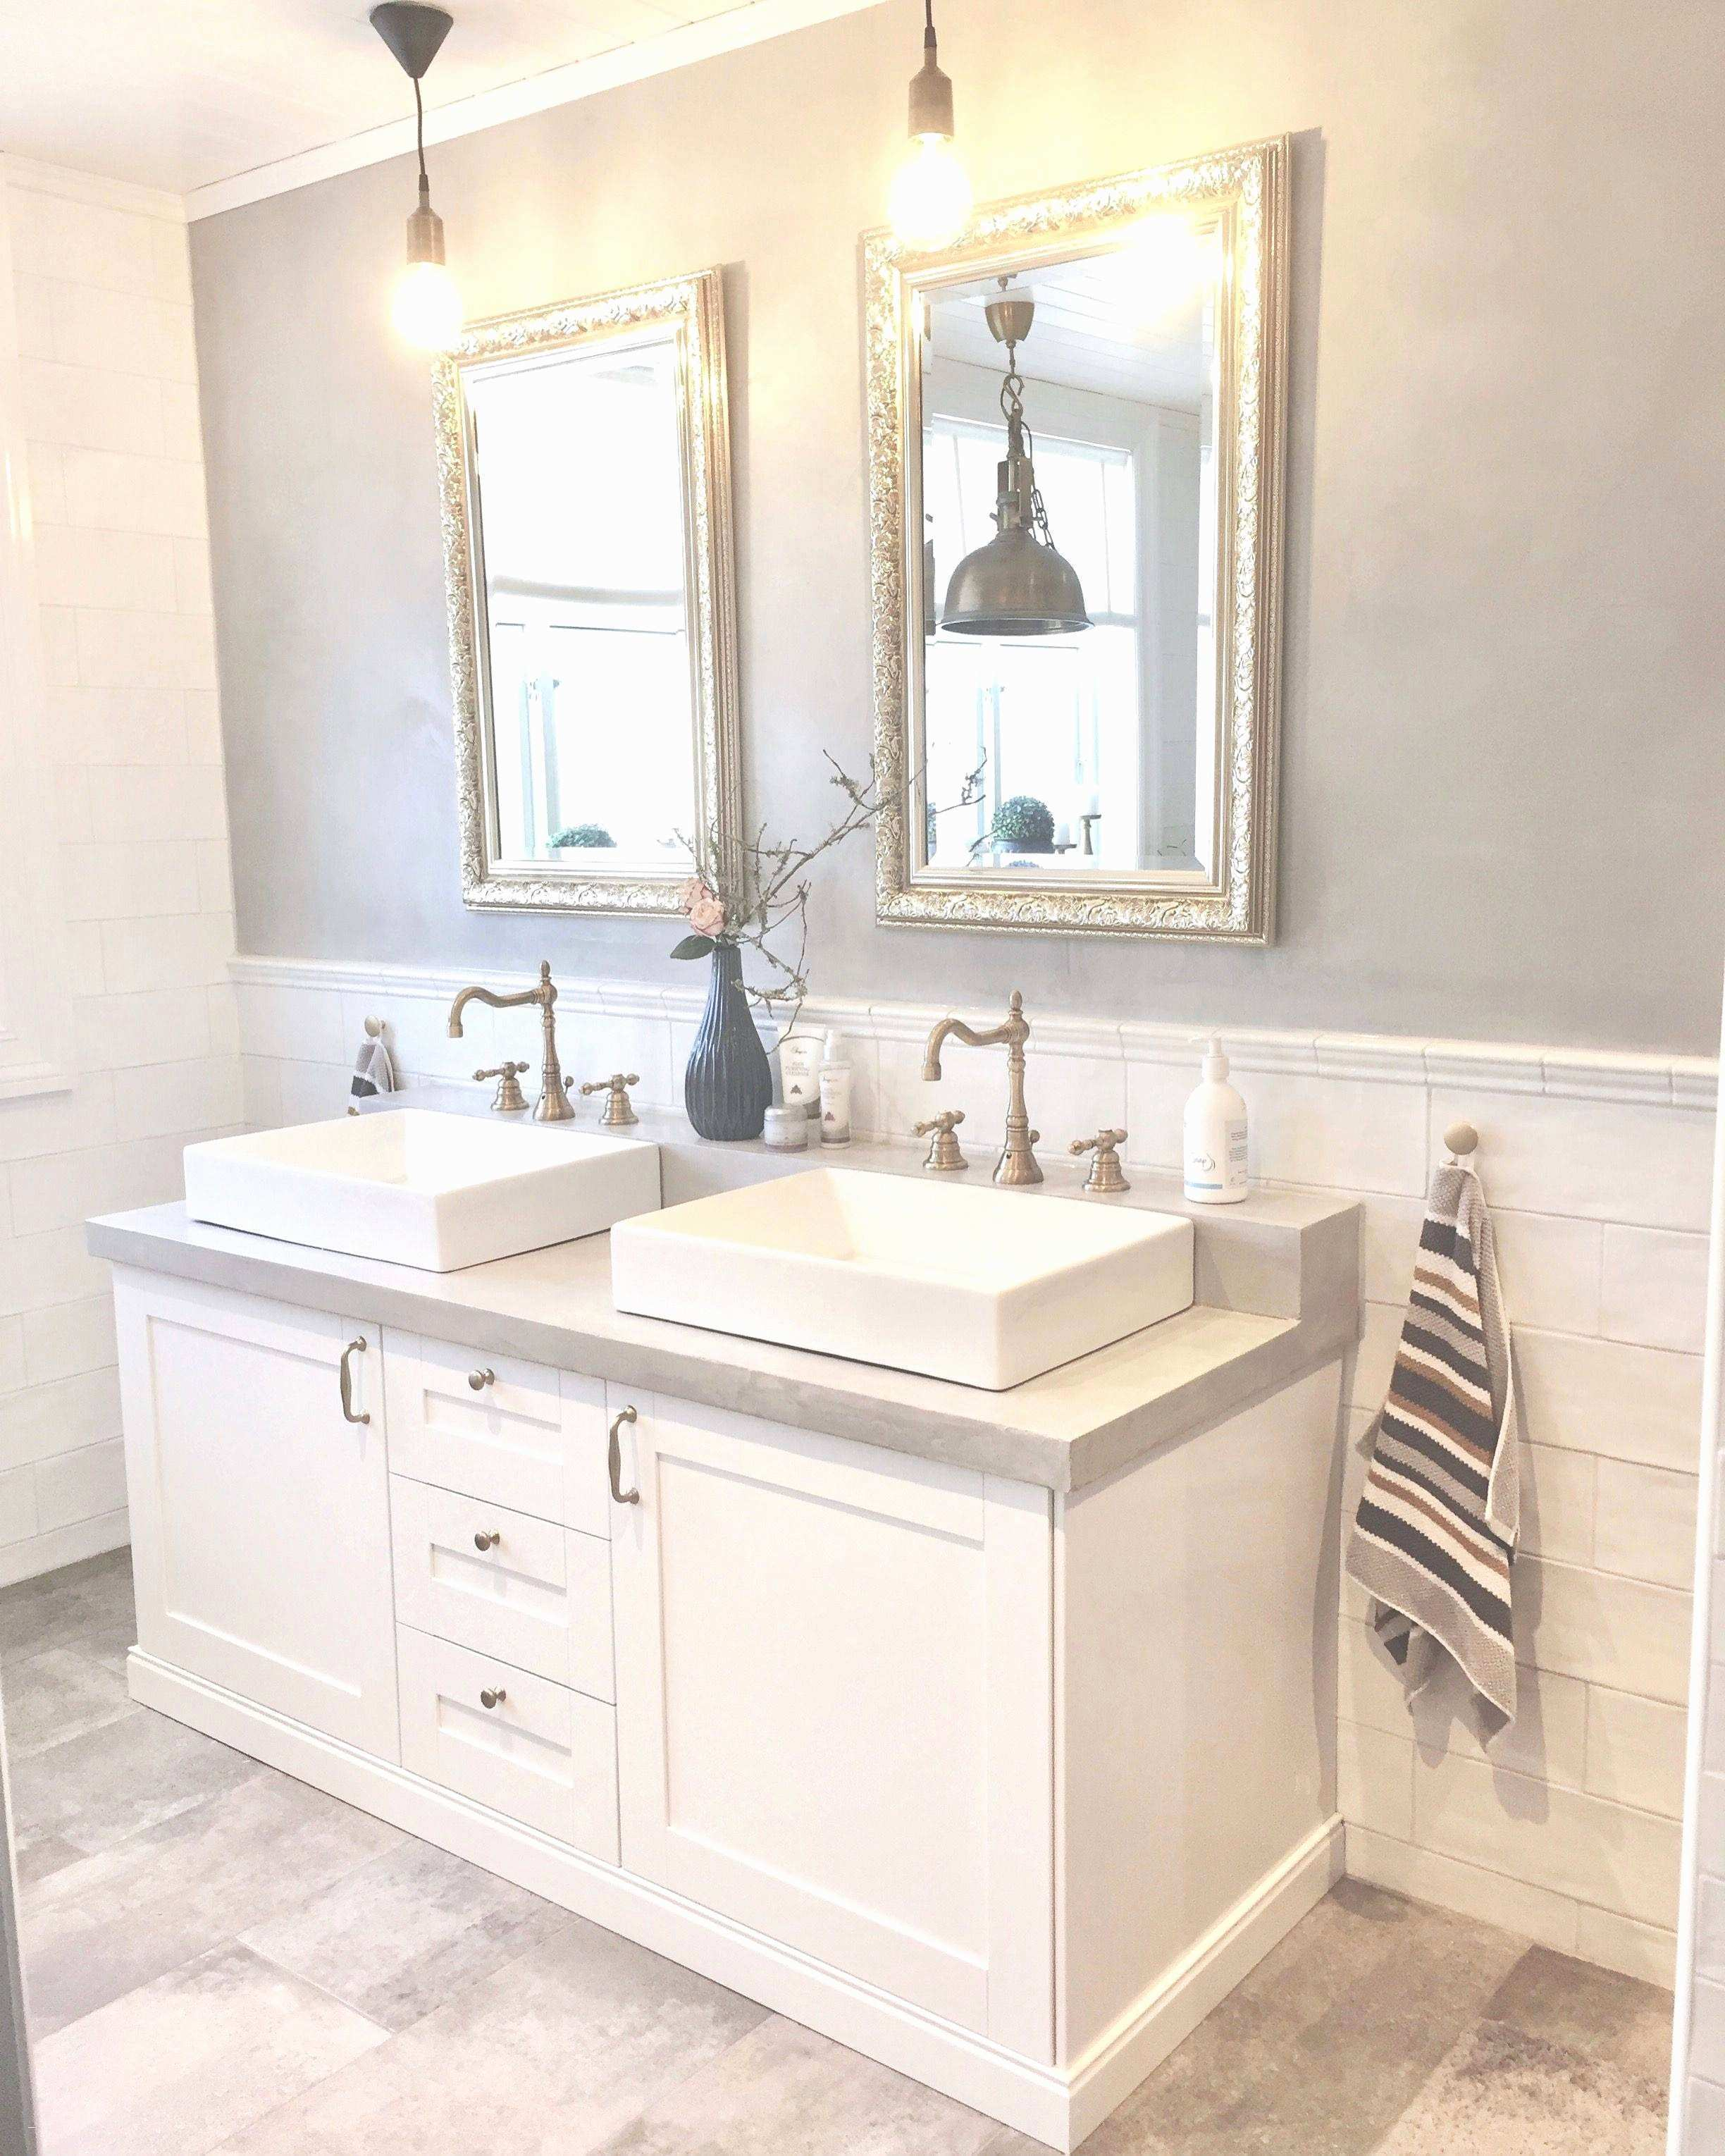 41 Lovely Gallery Bathroom Vanity with Mirror and Lights